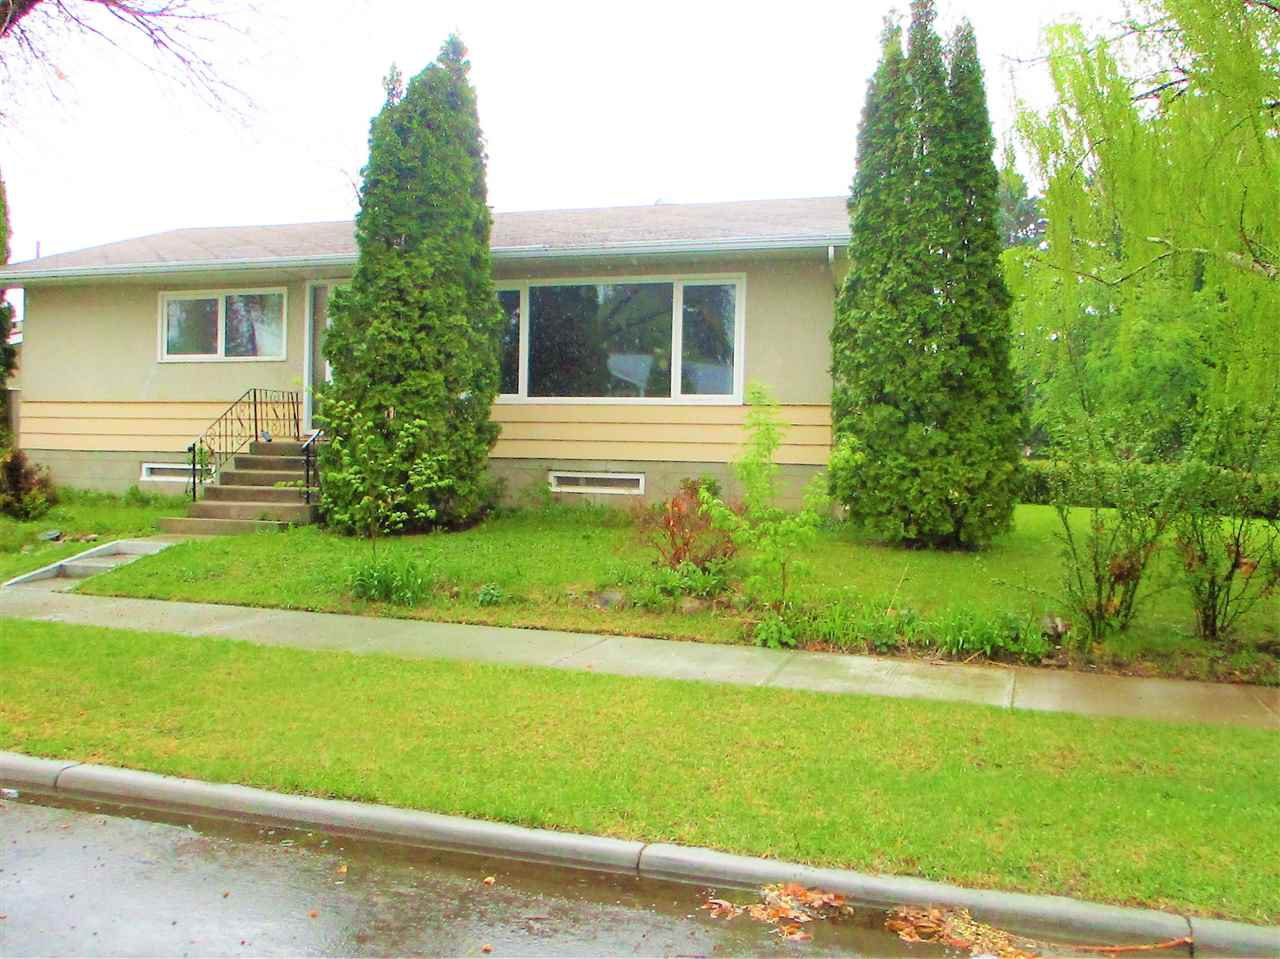 Main Photo: 12831 106 Street in Edmonton: Zone 01 House for sale : MLS®# E4198275